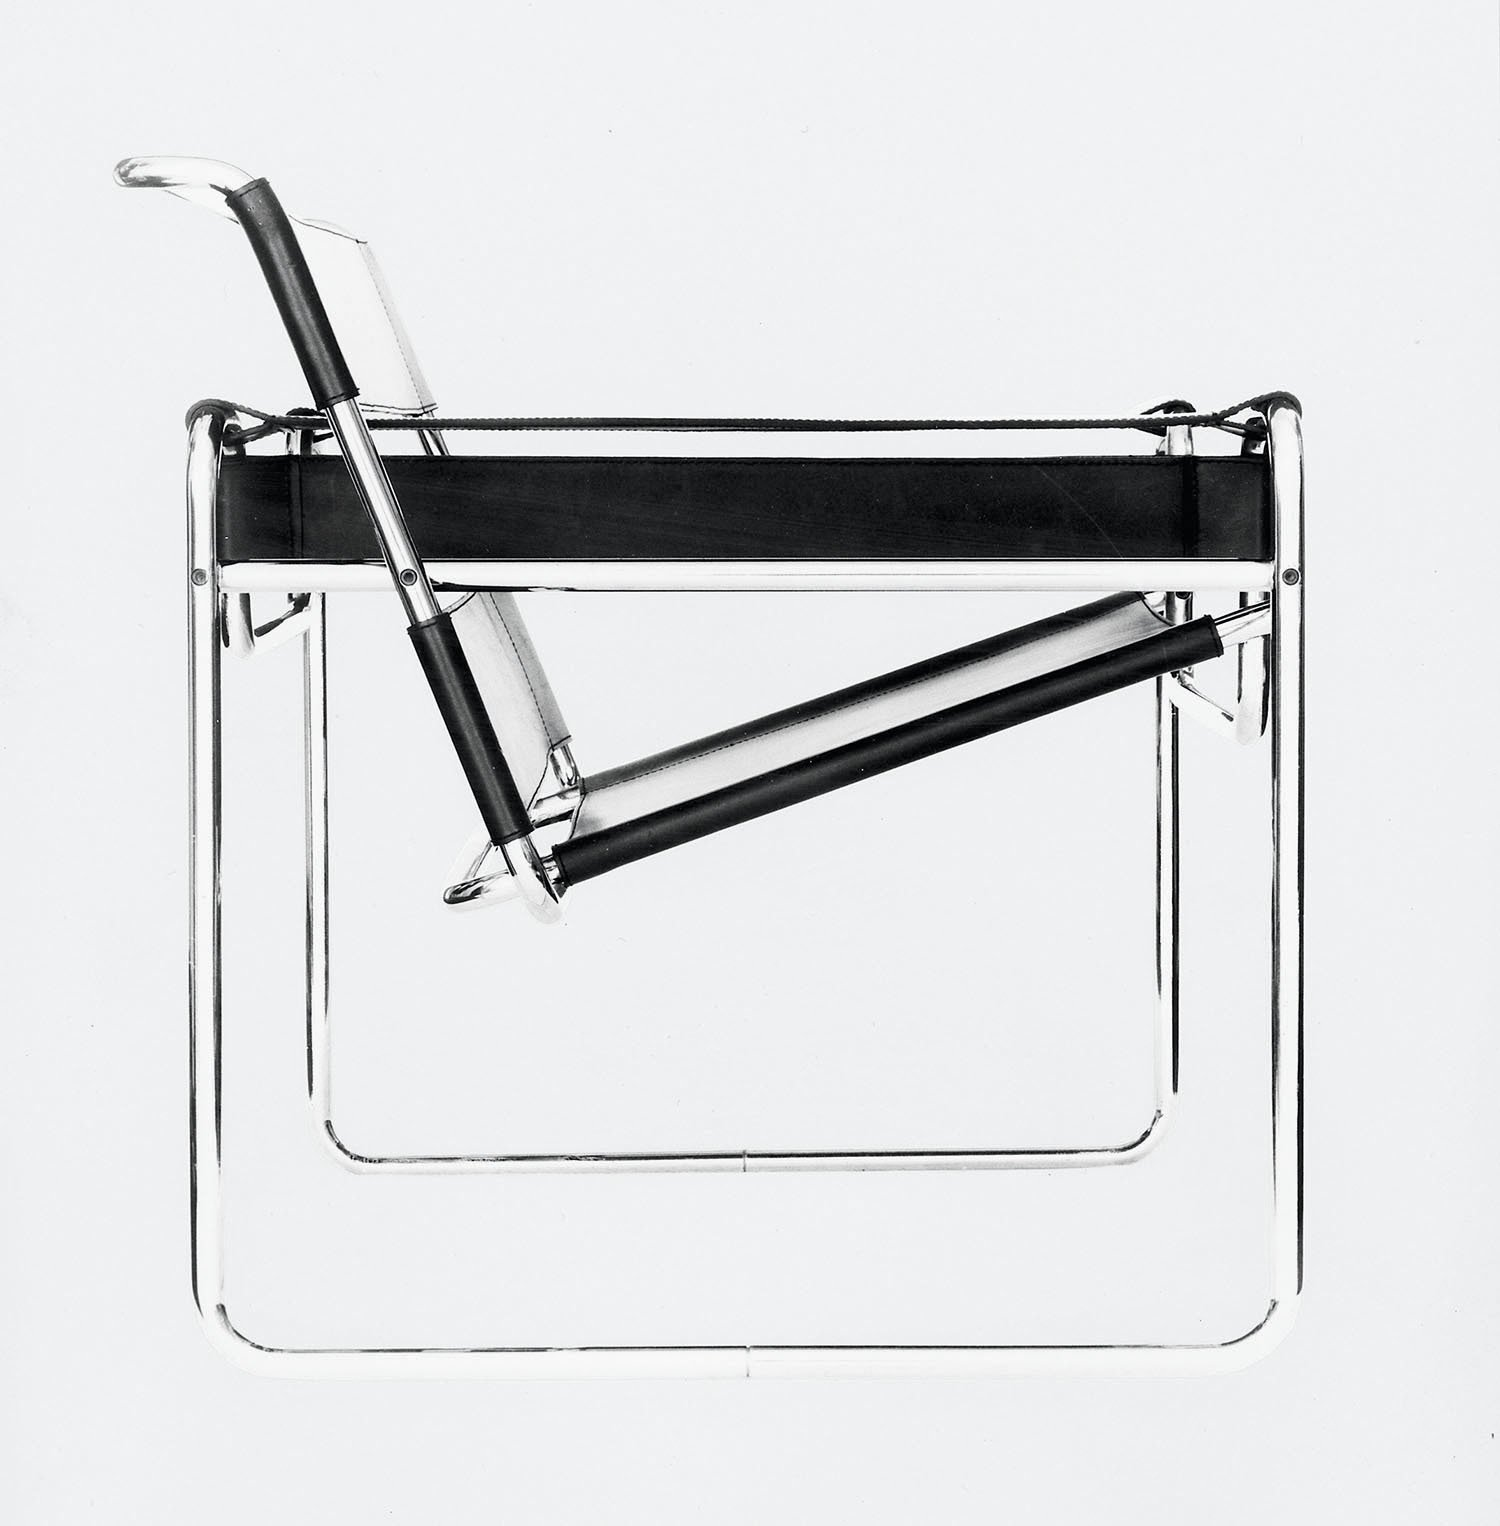 Fascinated by his bicycle, Breuer conducted early experimentations with tubular steel that resulted in the iconic Wassily chair, the first of many furnishings that he made with the material. (1925)  Bicycle, Bicycle by Aileen Kwun from From Bauhaus Student to Brutalist Supreme: Highlights by Marcel Breuer